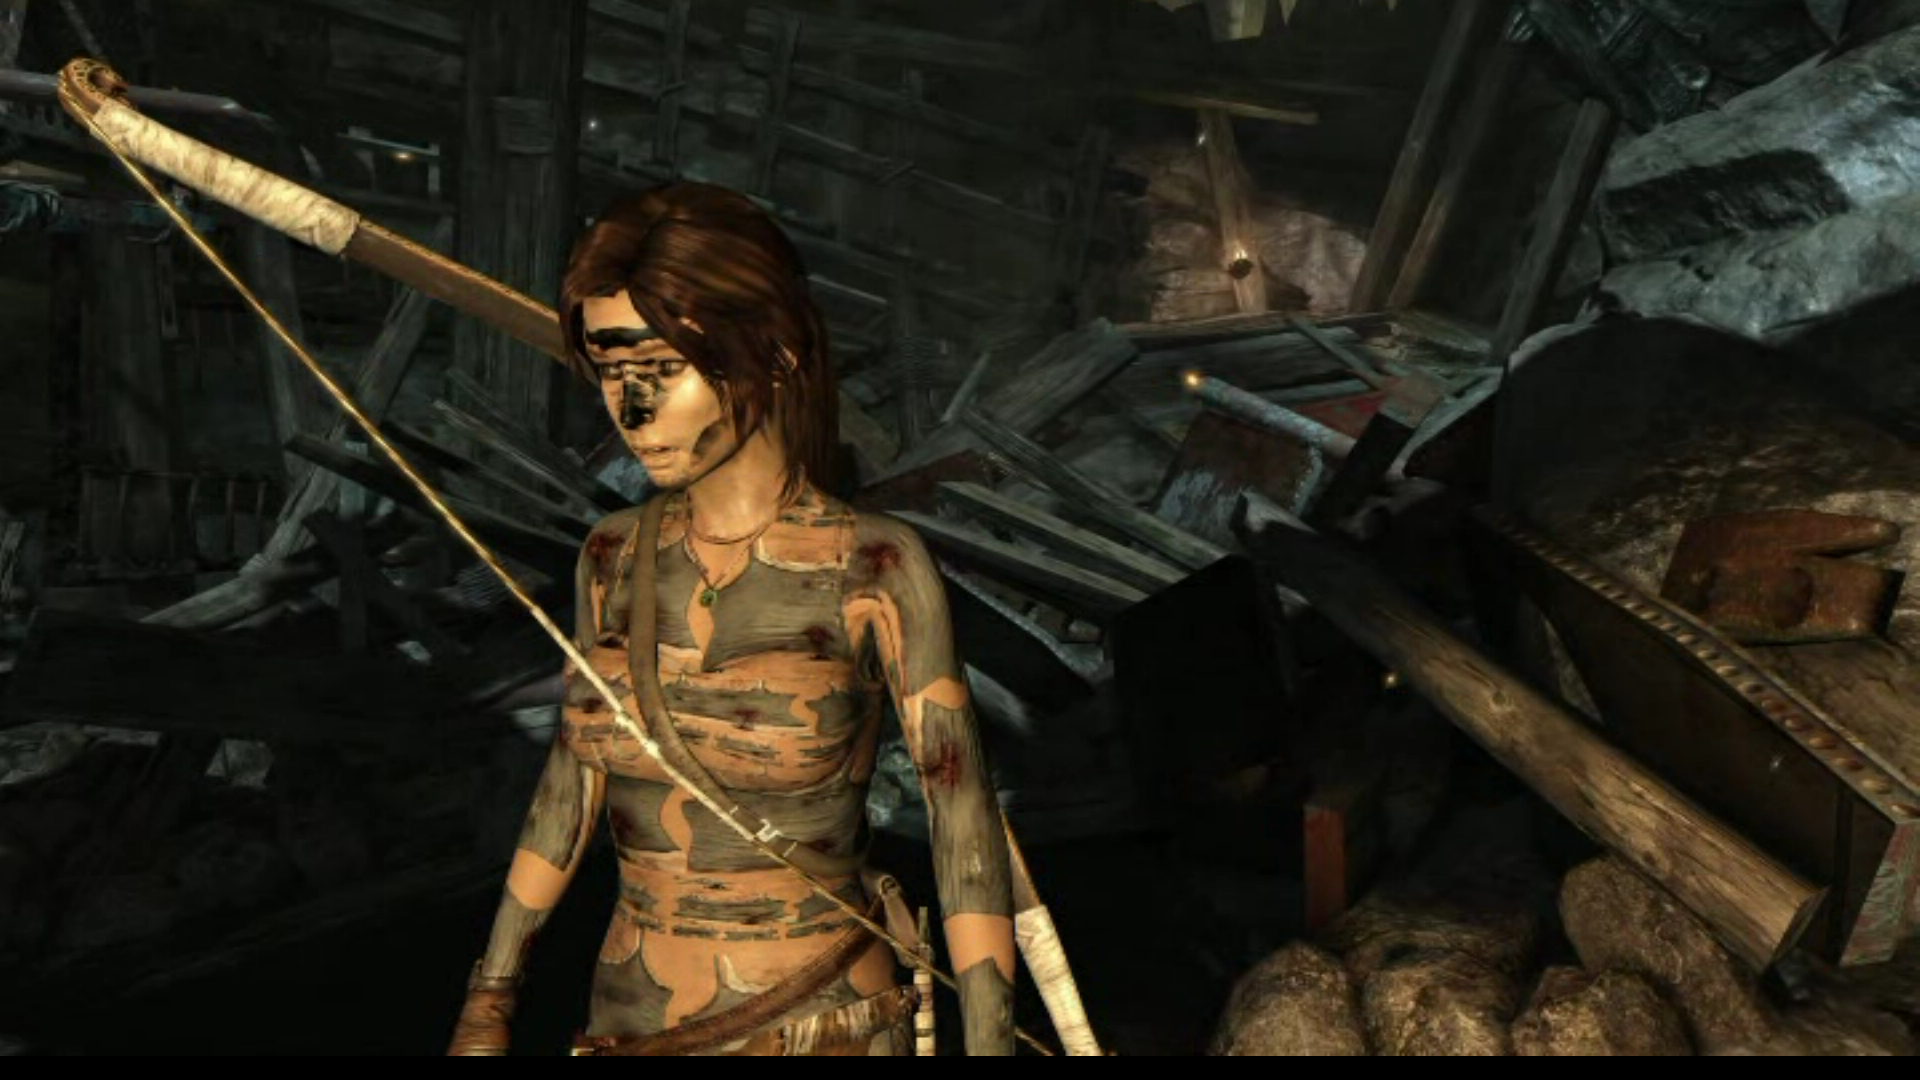 Lara croft underworld nude glitch hentai pics